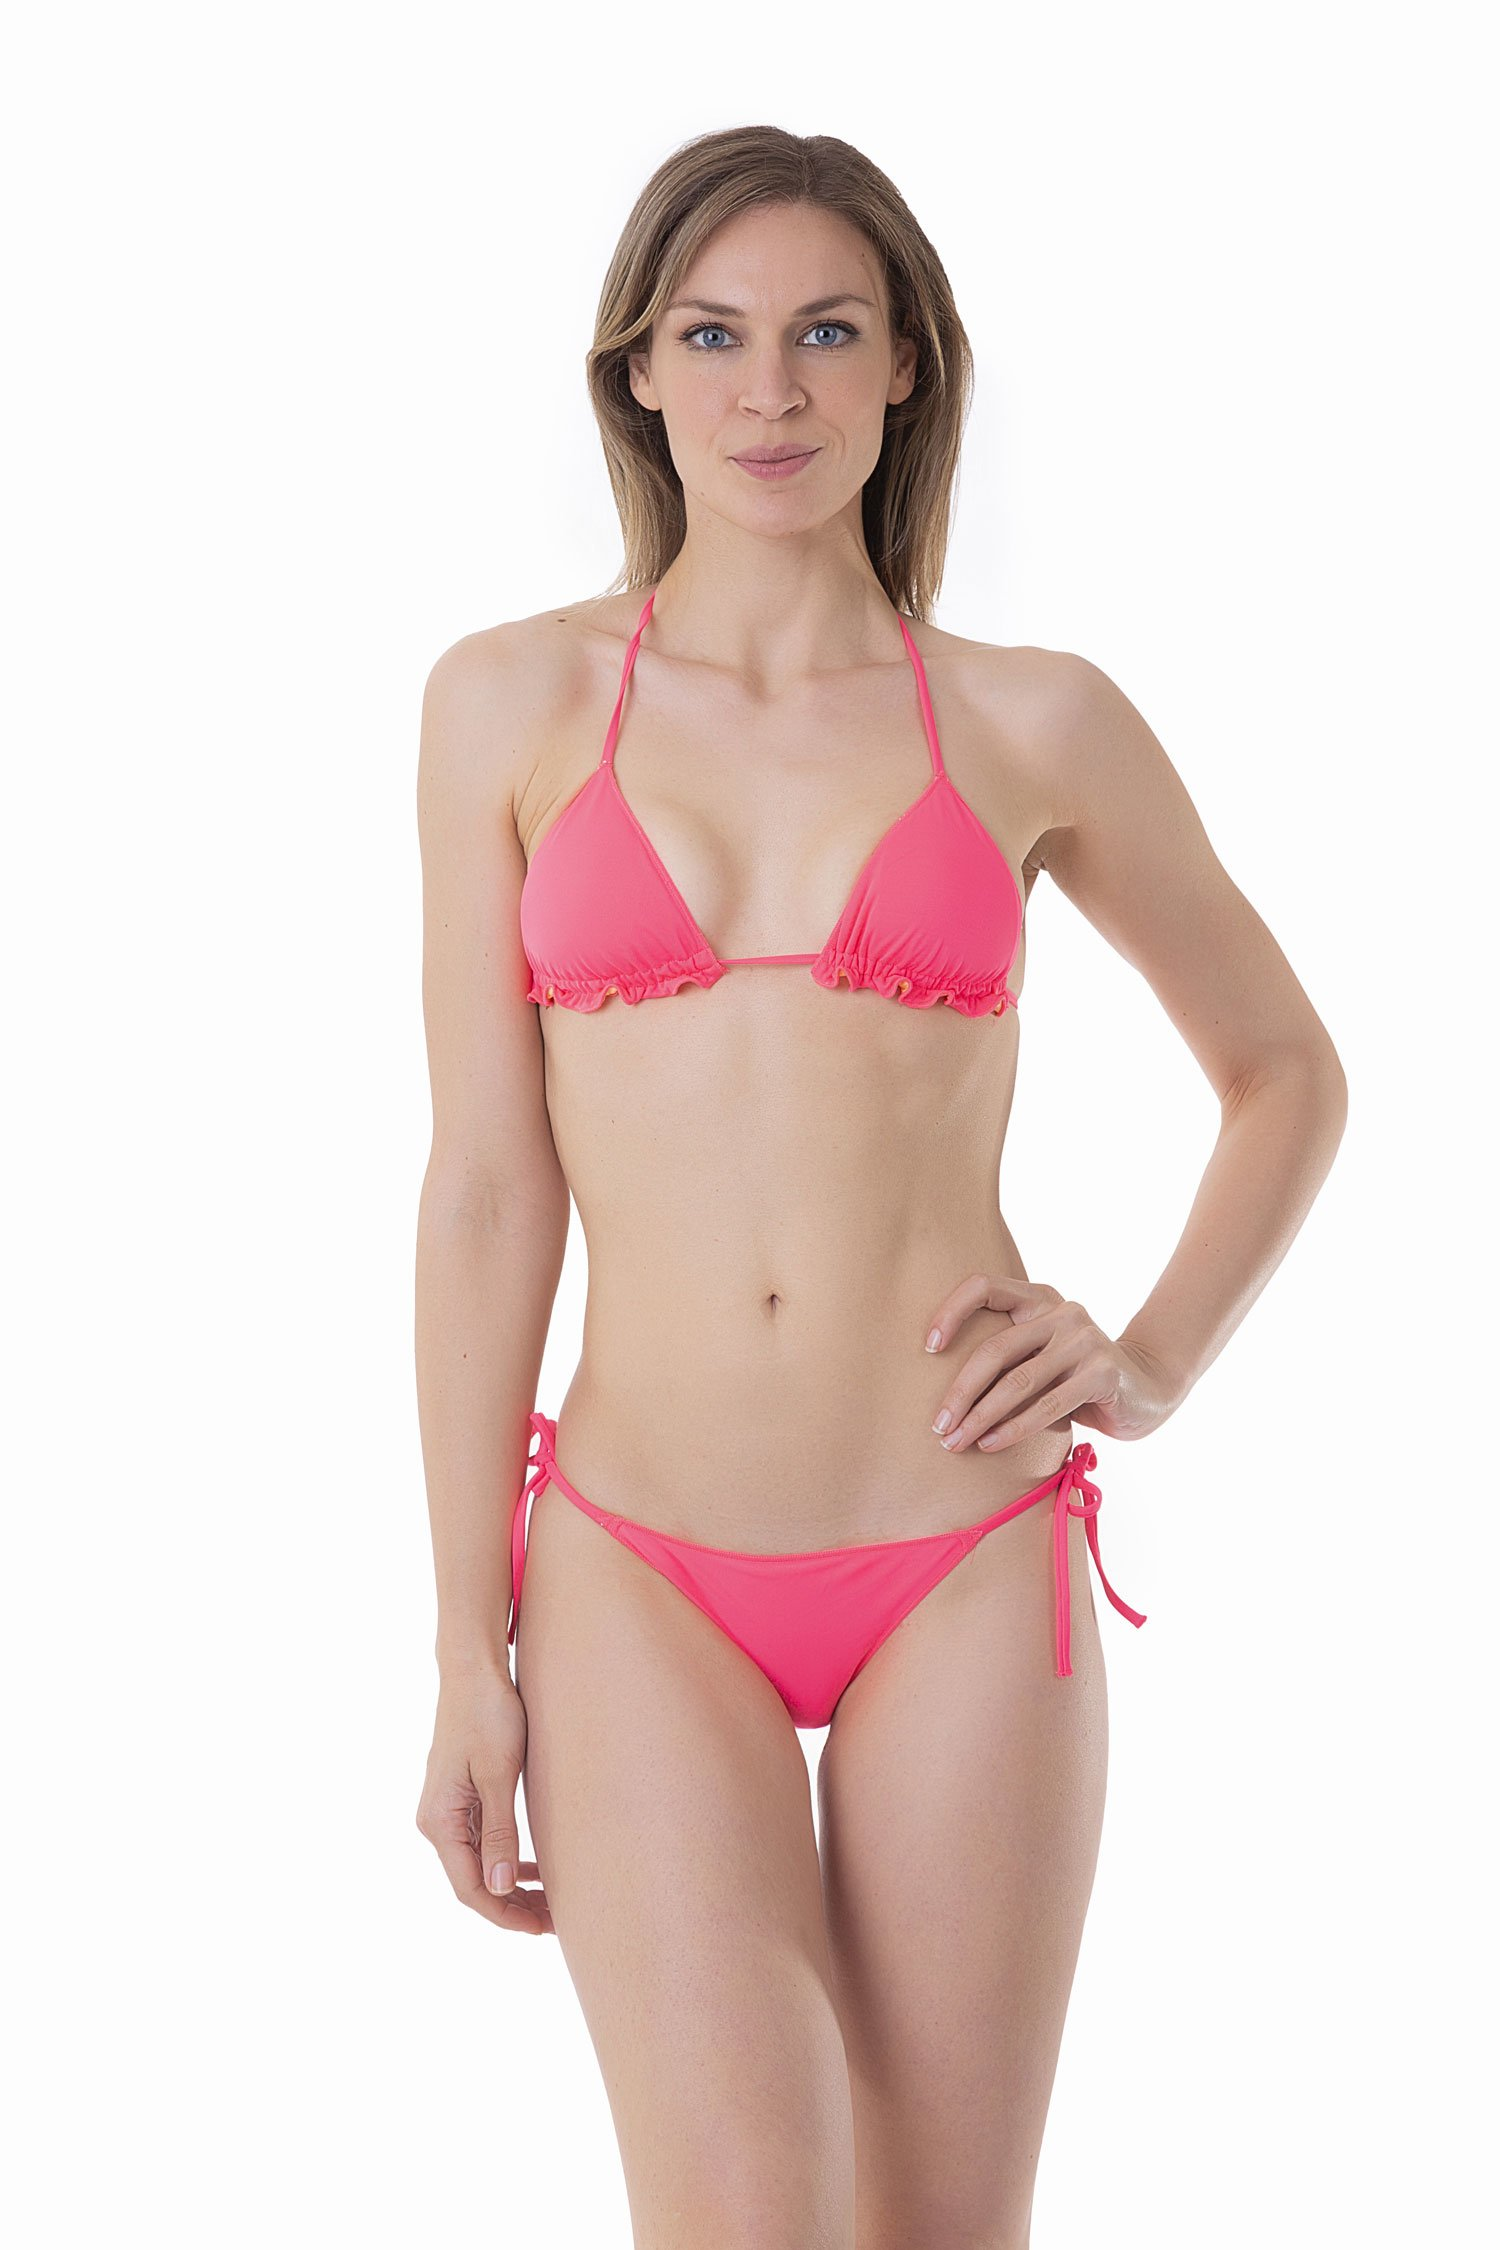 SOLID COLOUR BASIC TRIANGLE TOP - Popstar Fuxia Fluo